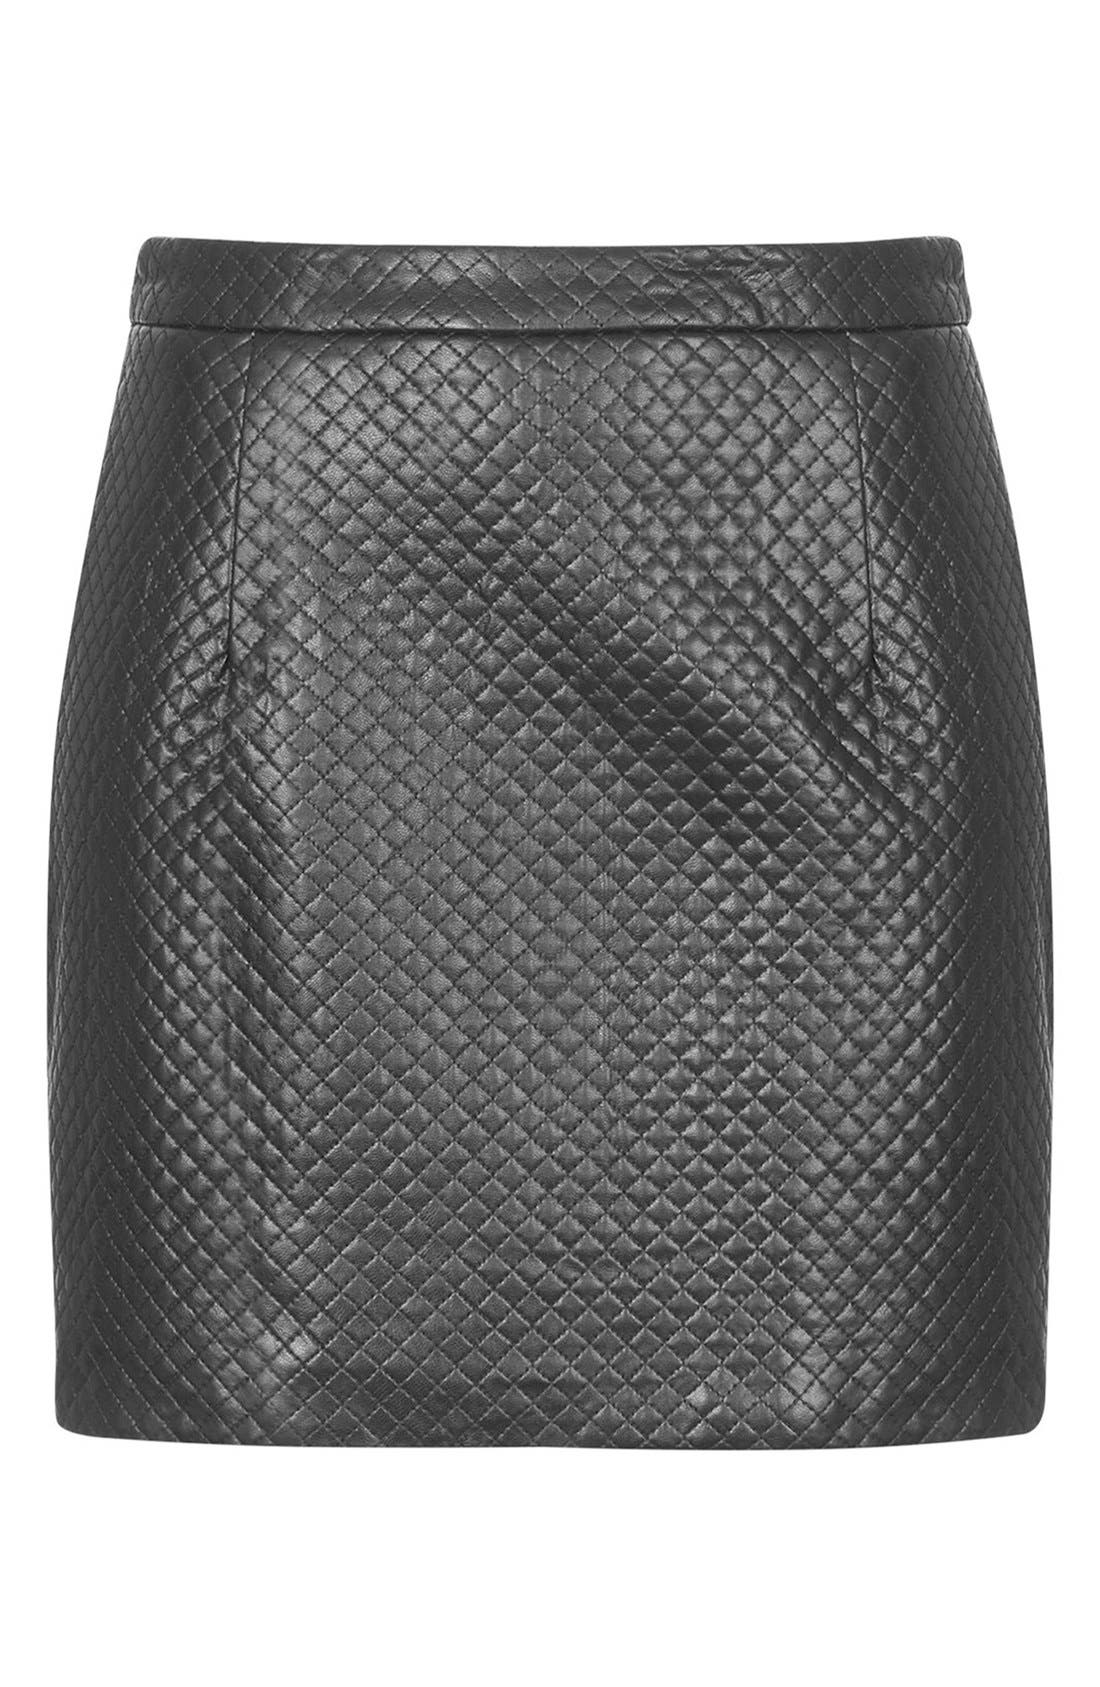 Alternate Image 3  - Topshop Faux Leather A-Line Skirt